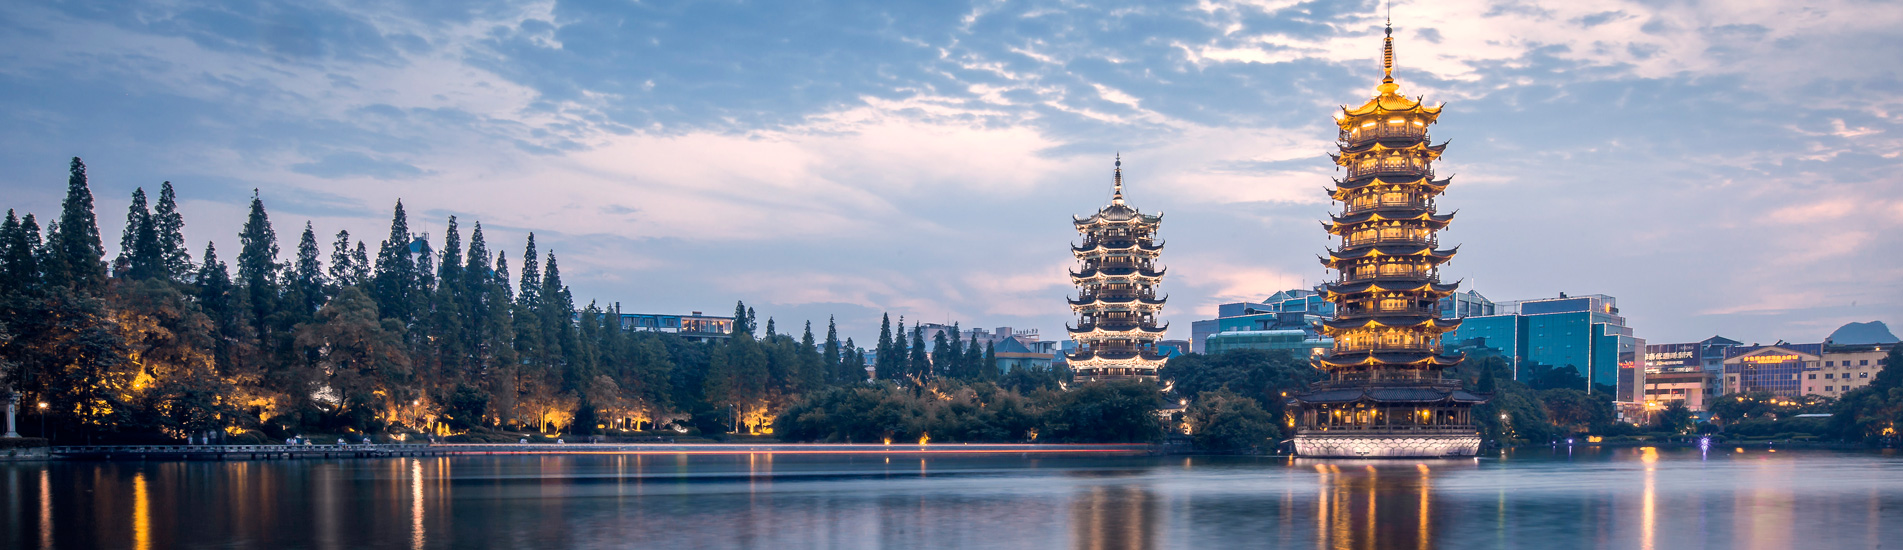 Two pagodas in Guilin